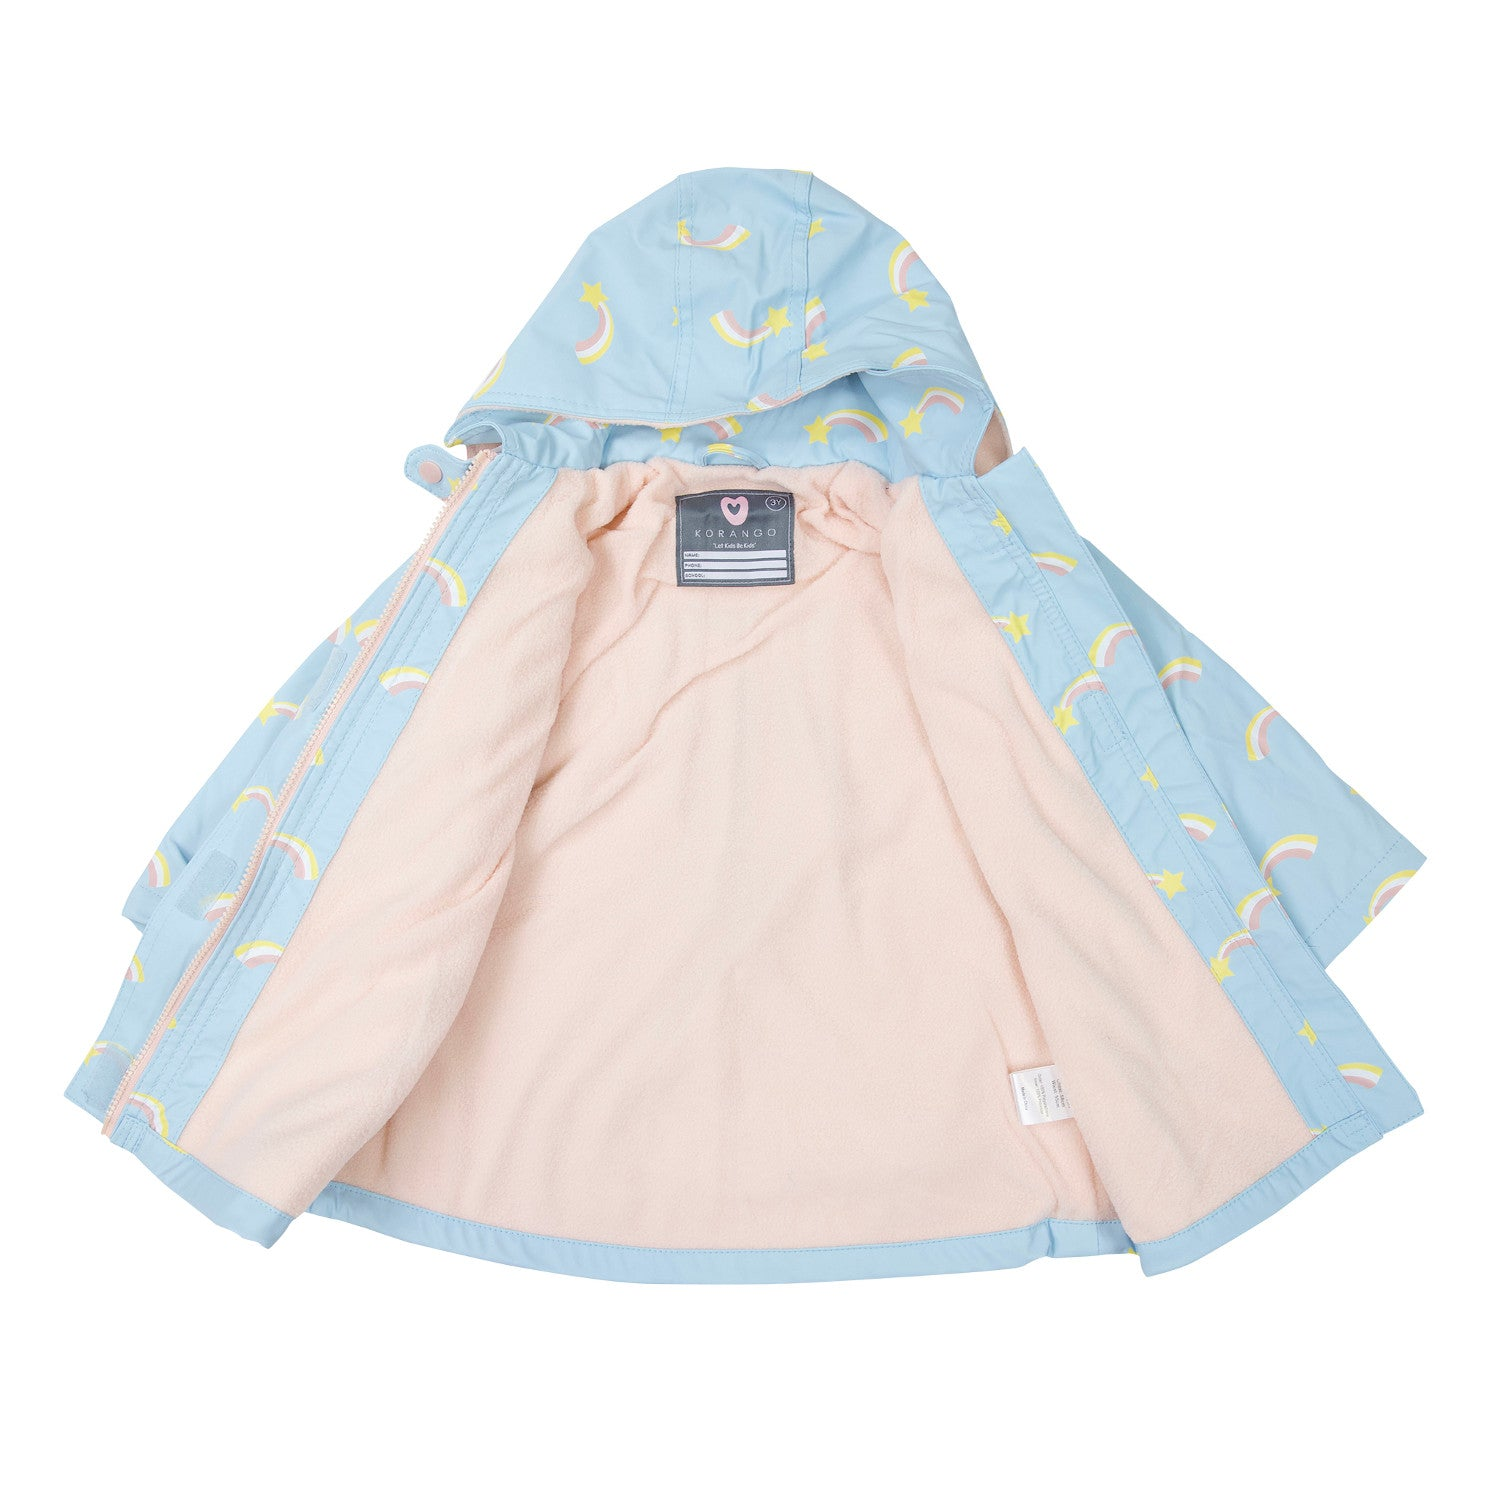 Korango Raincoat Shooting Star Blue